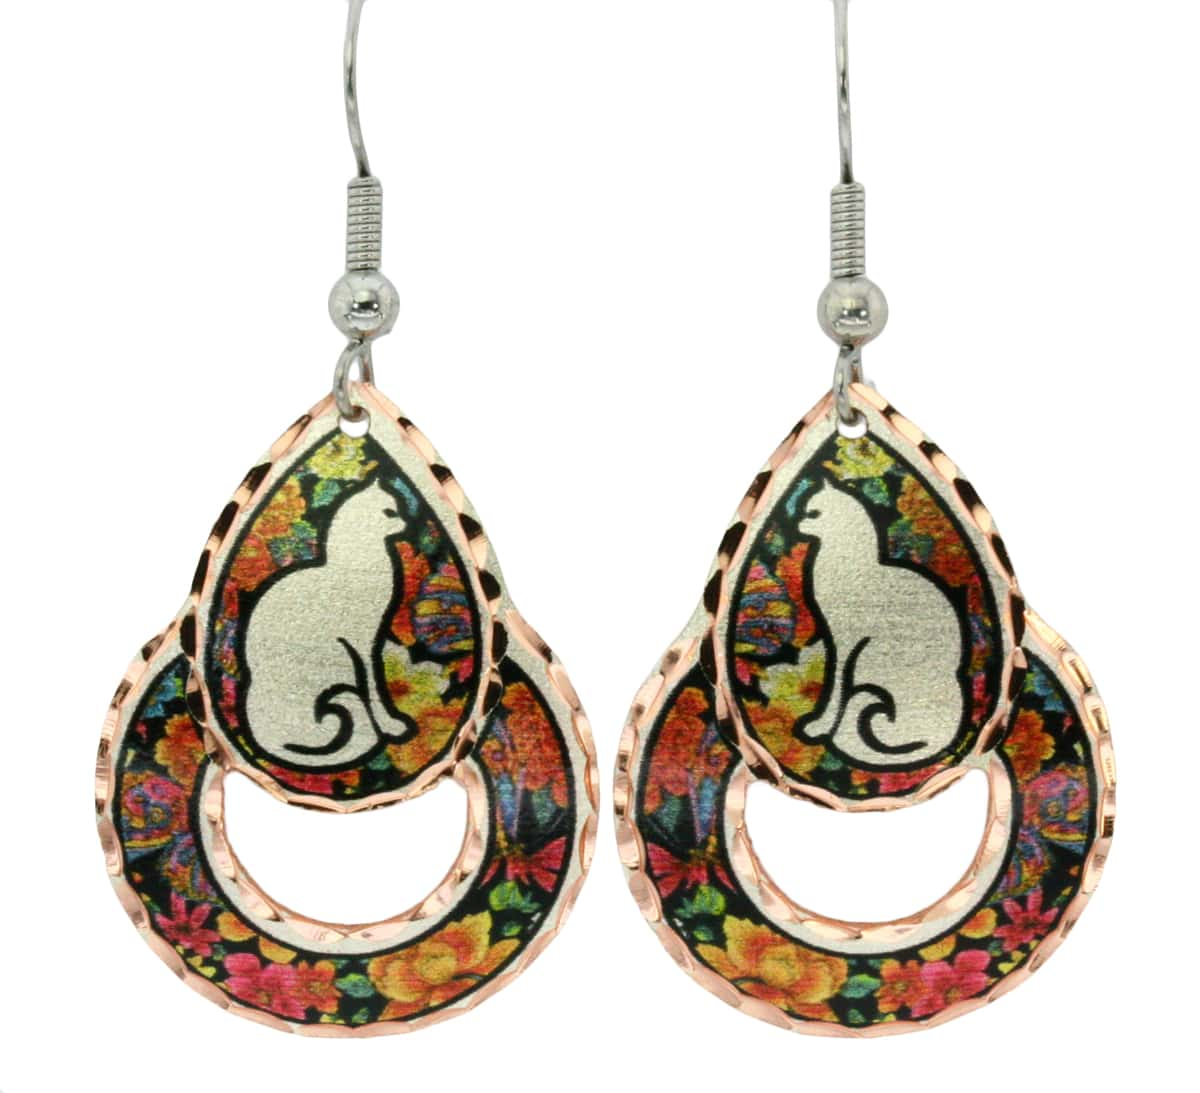 Silhouette cat earrings with colorful flower background